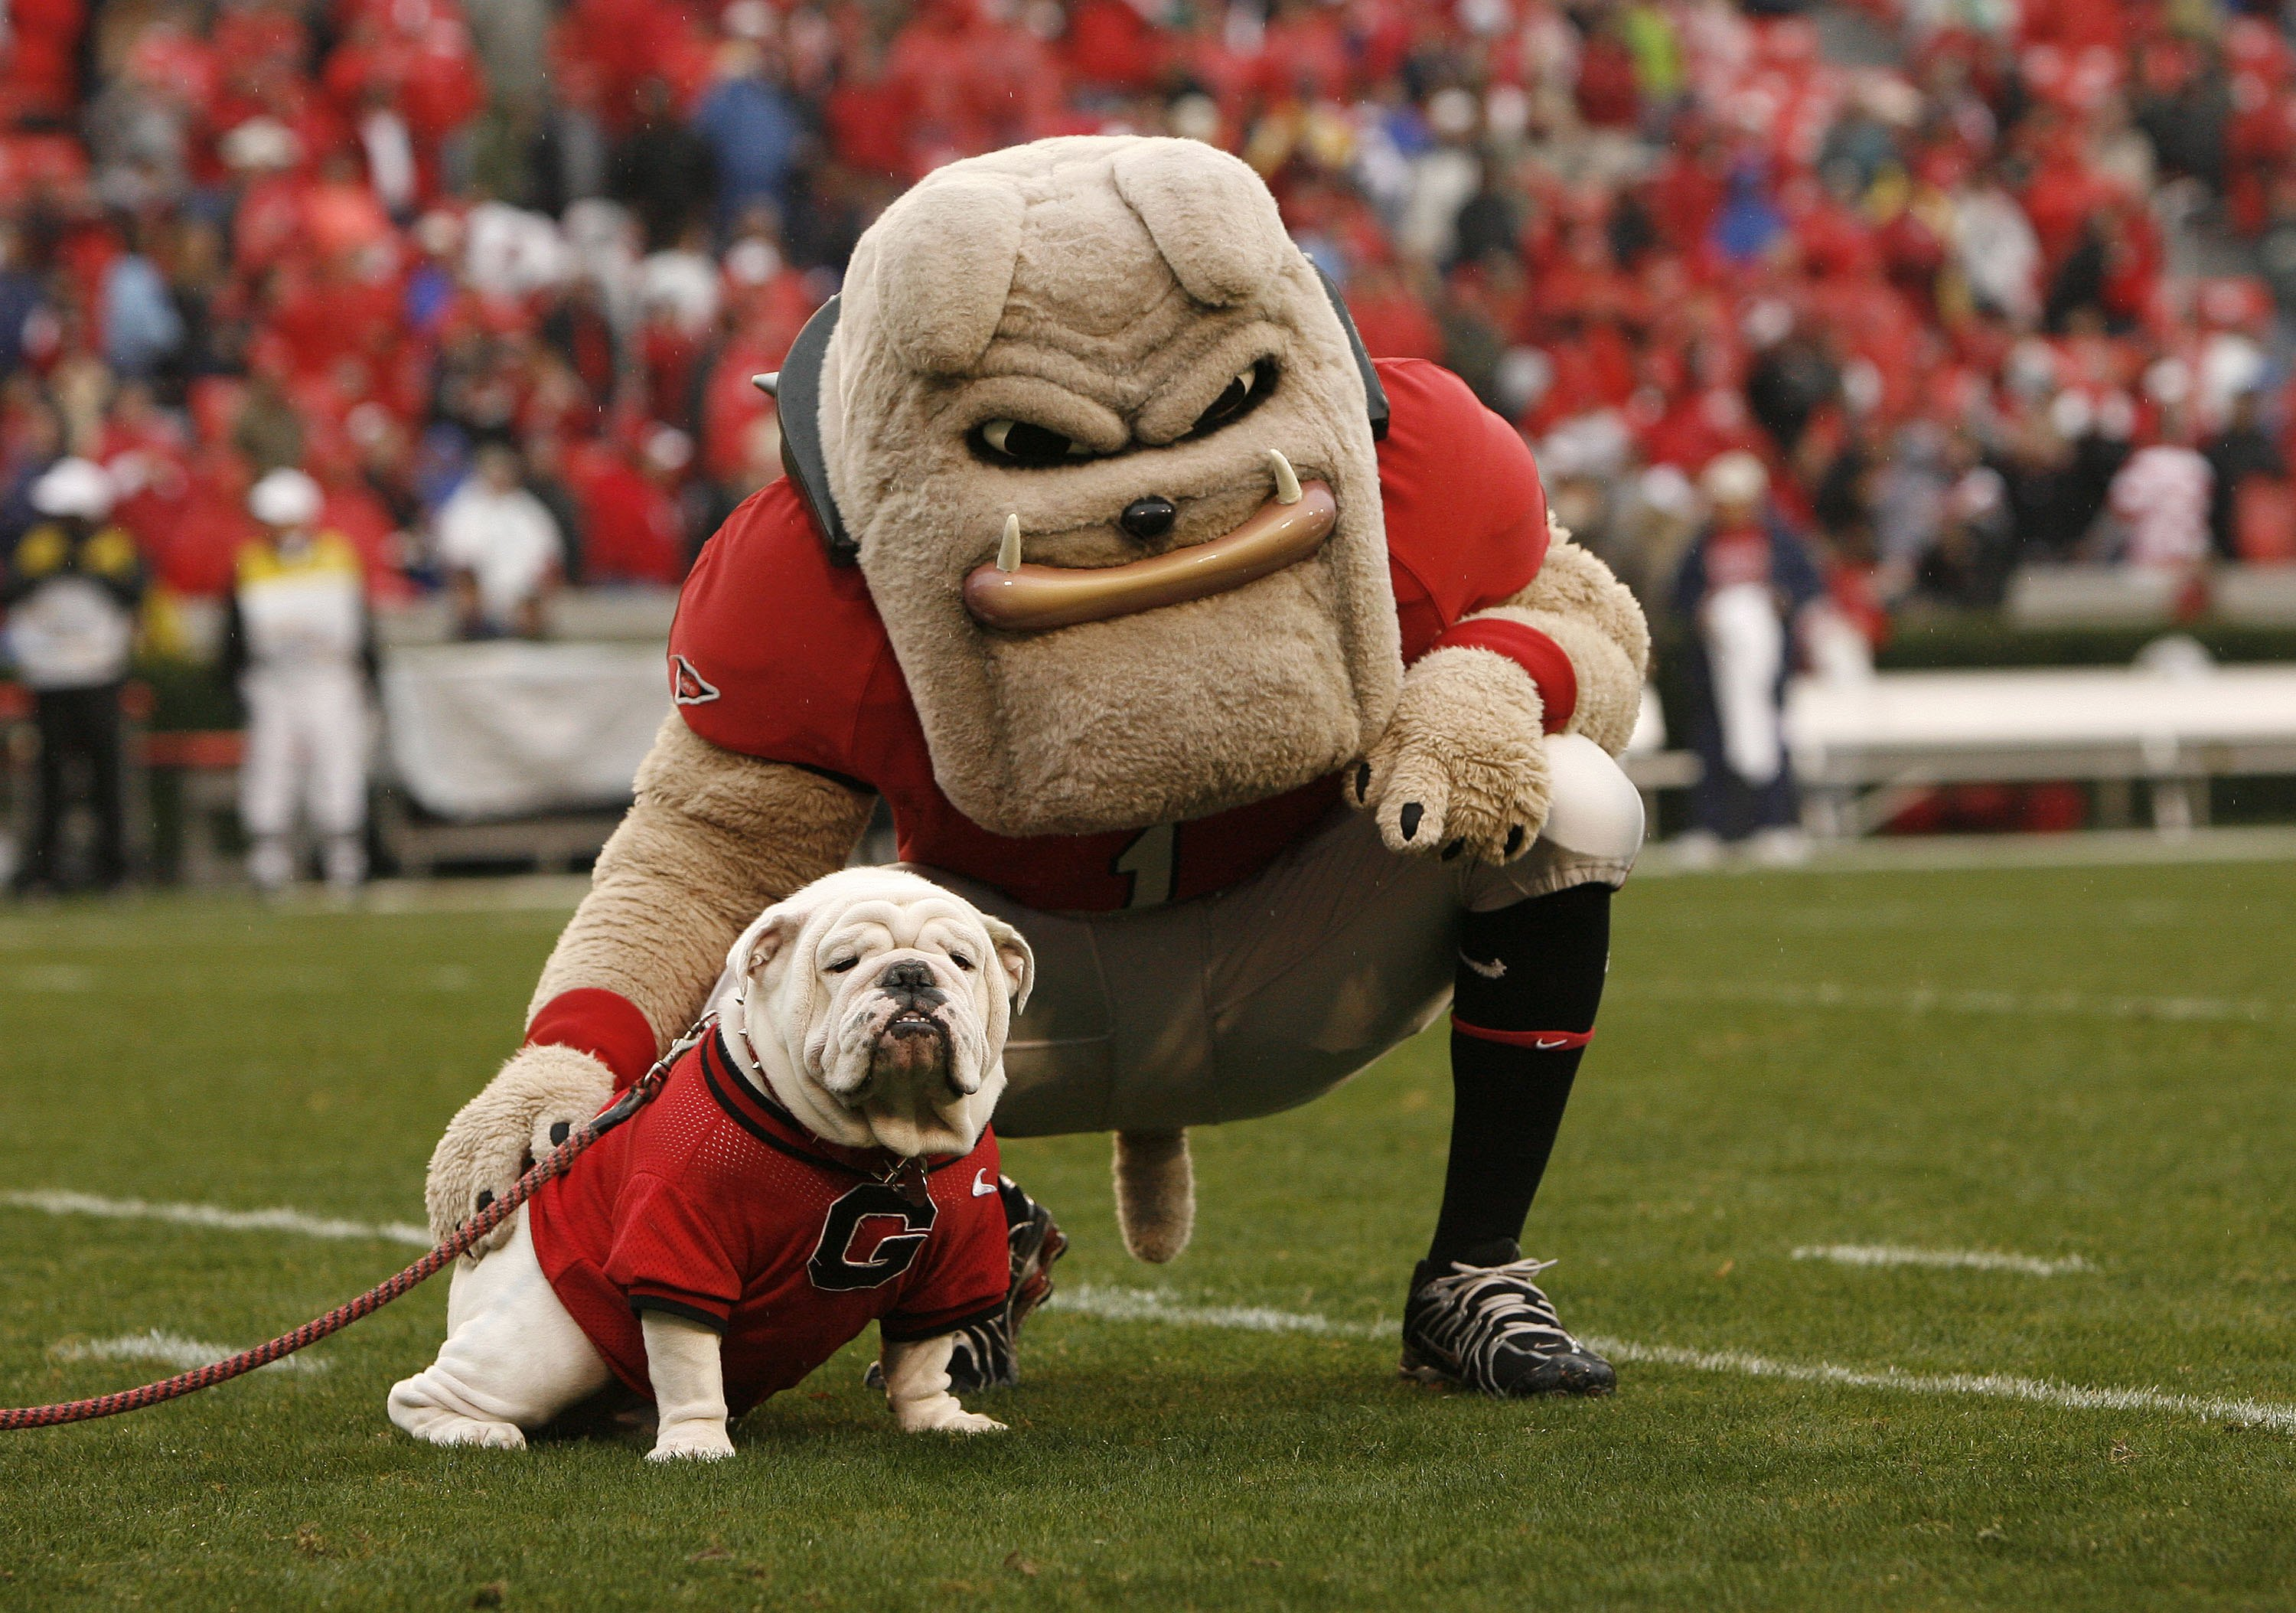 All college football mascots